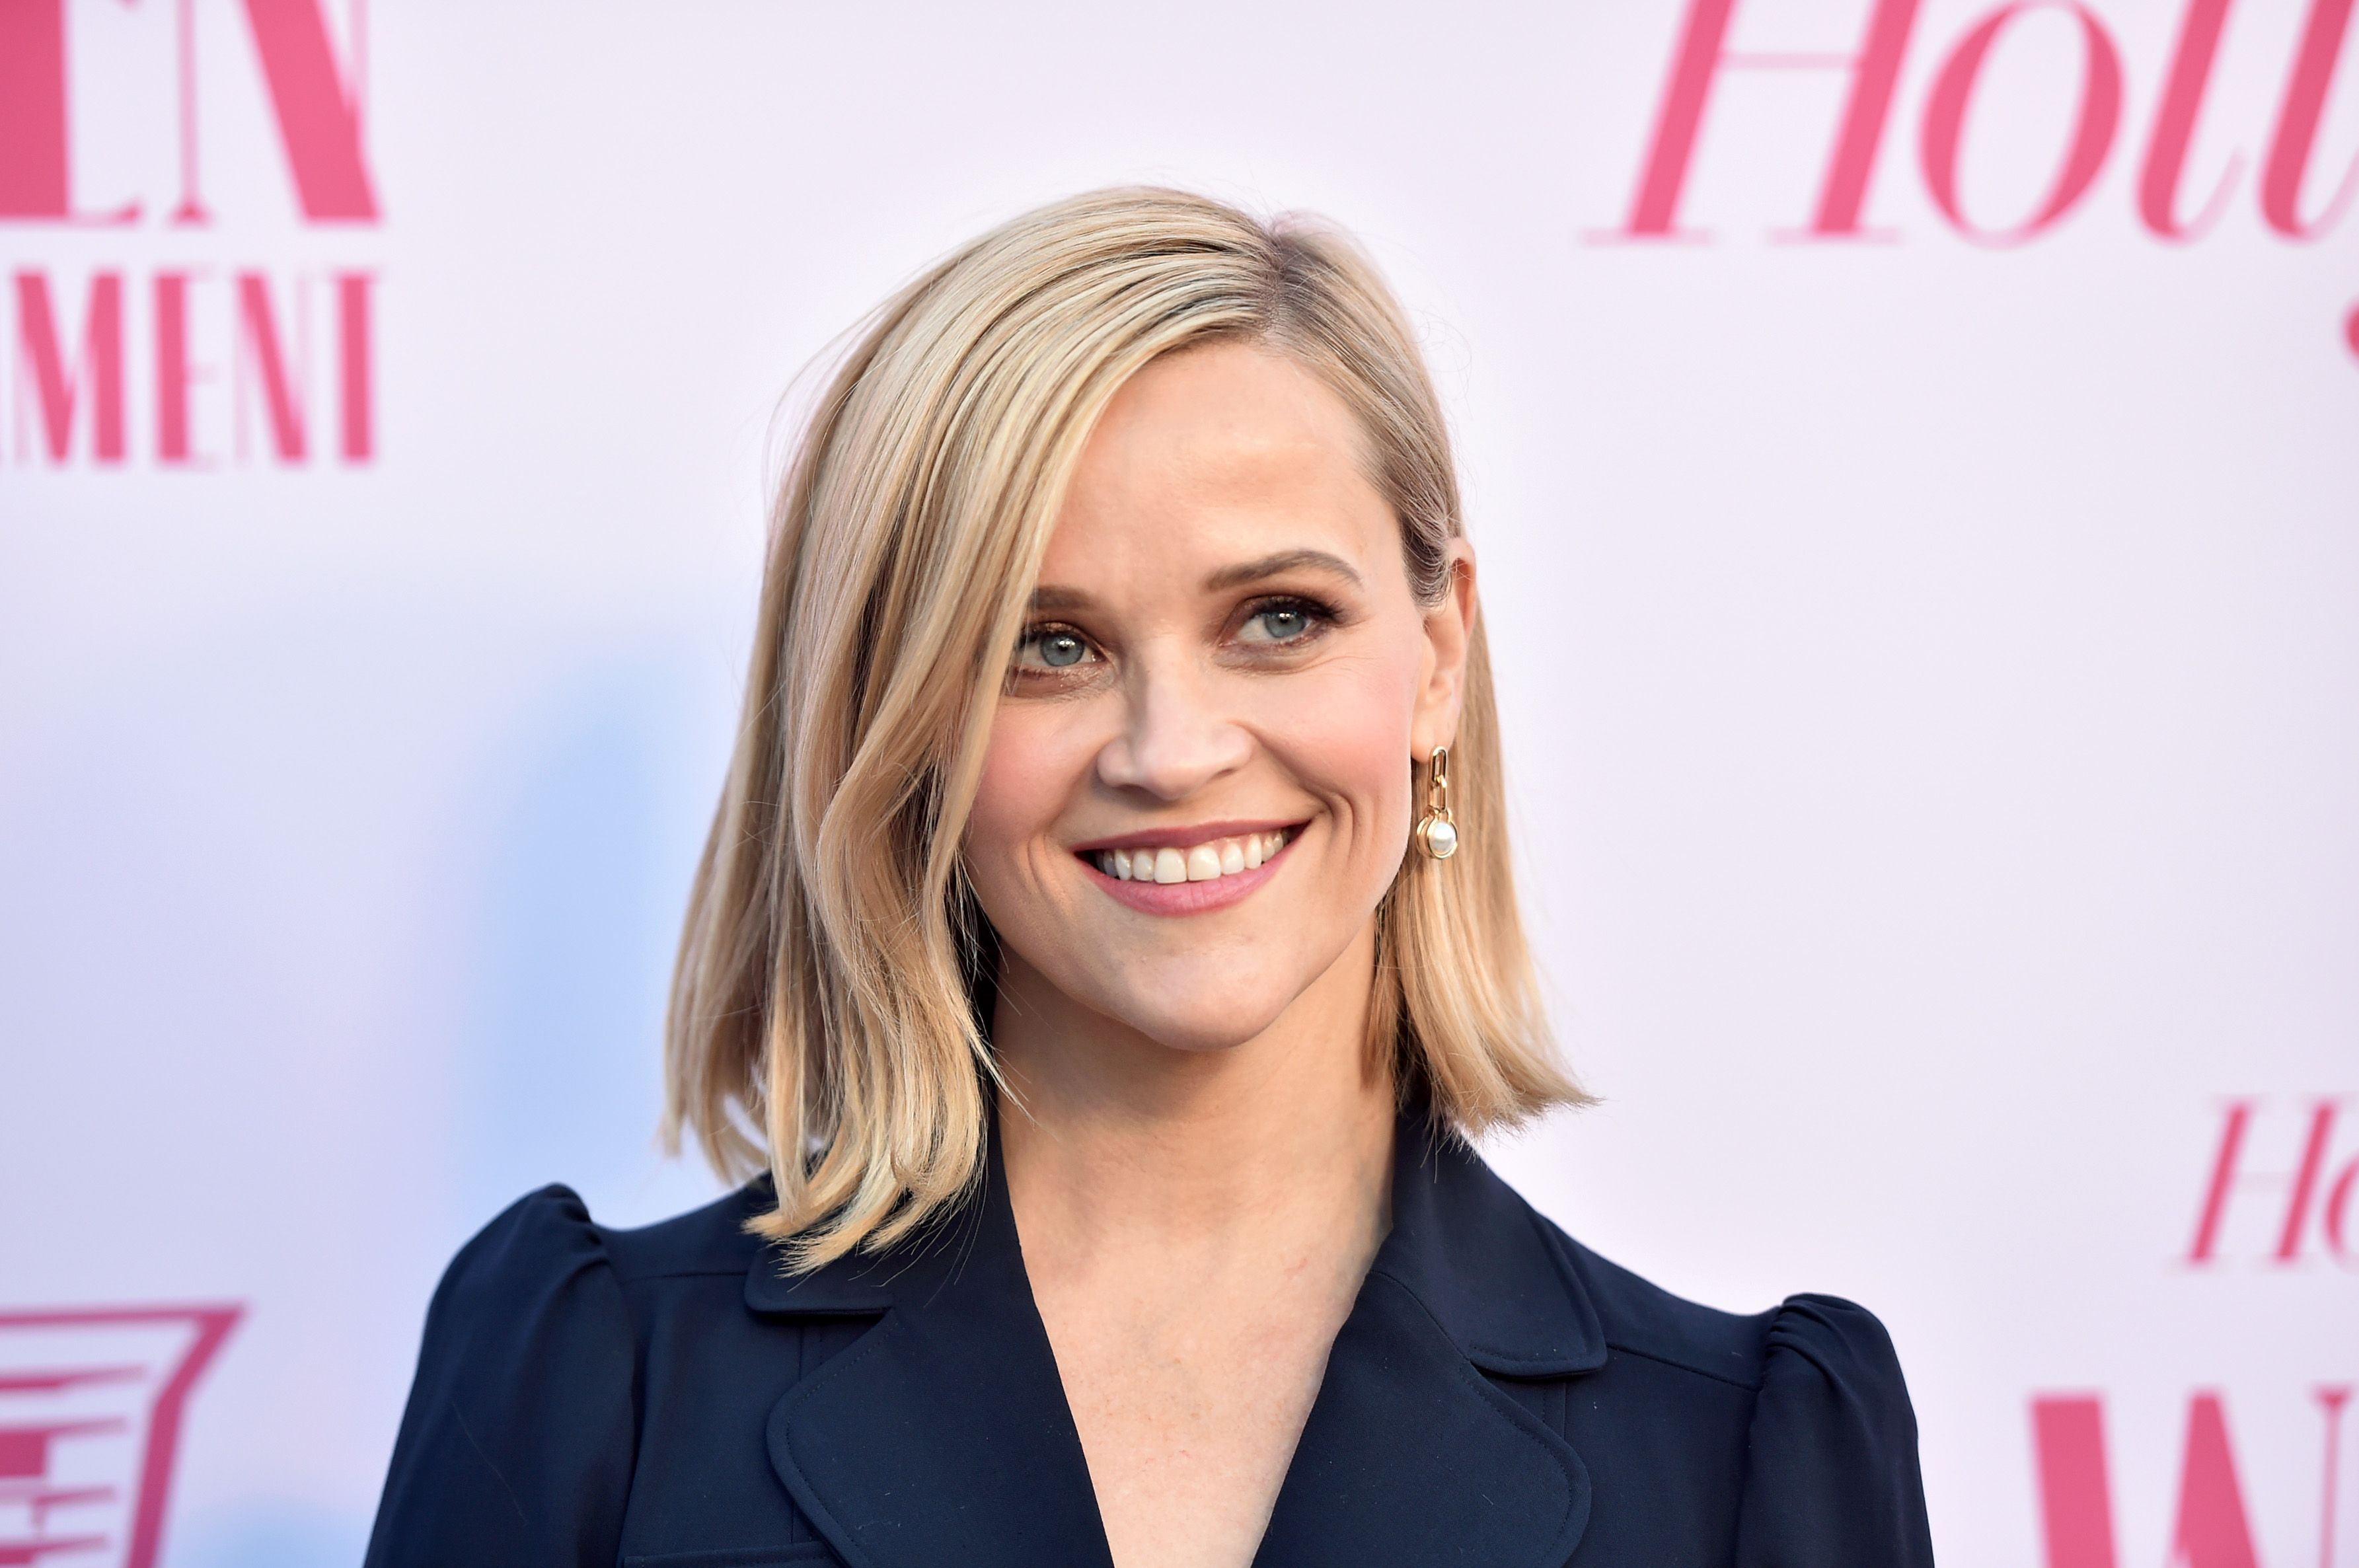 Reese Witherspoon and daughter Ava had another 'twin' moment on the red carpet